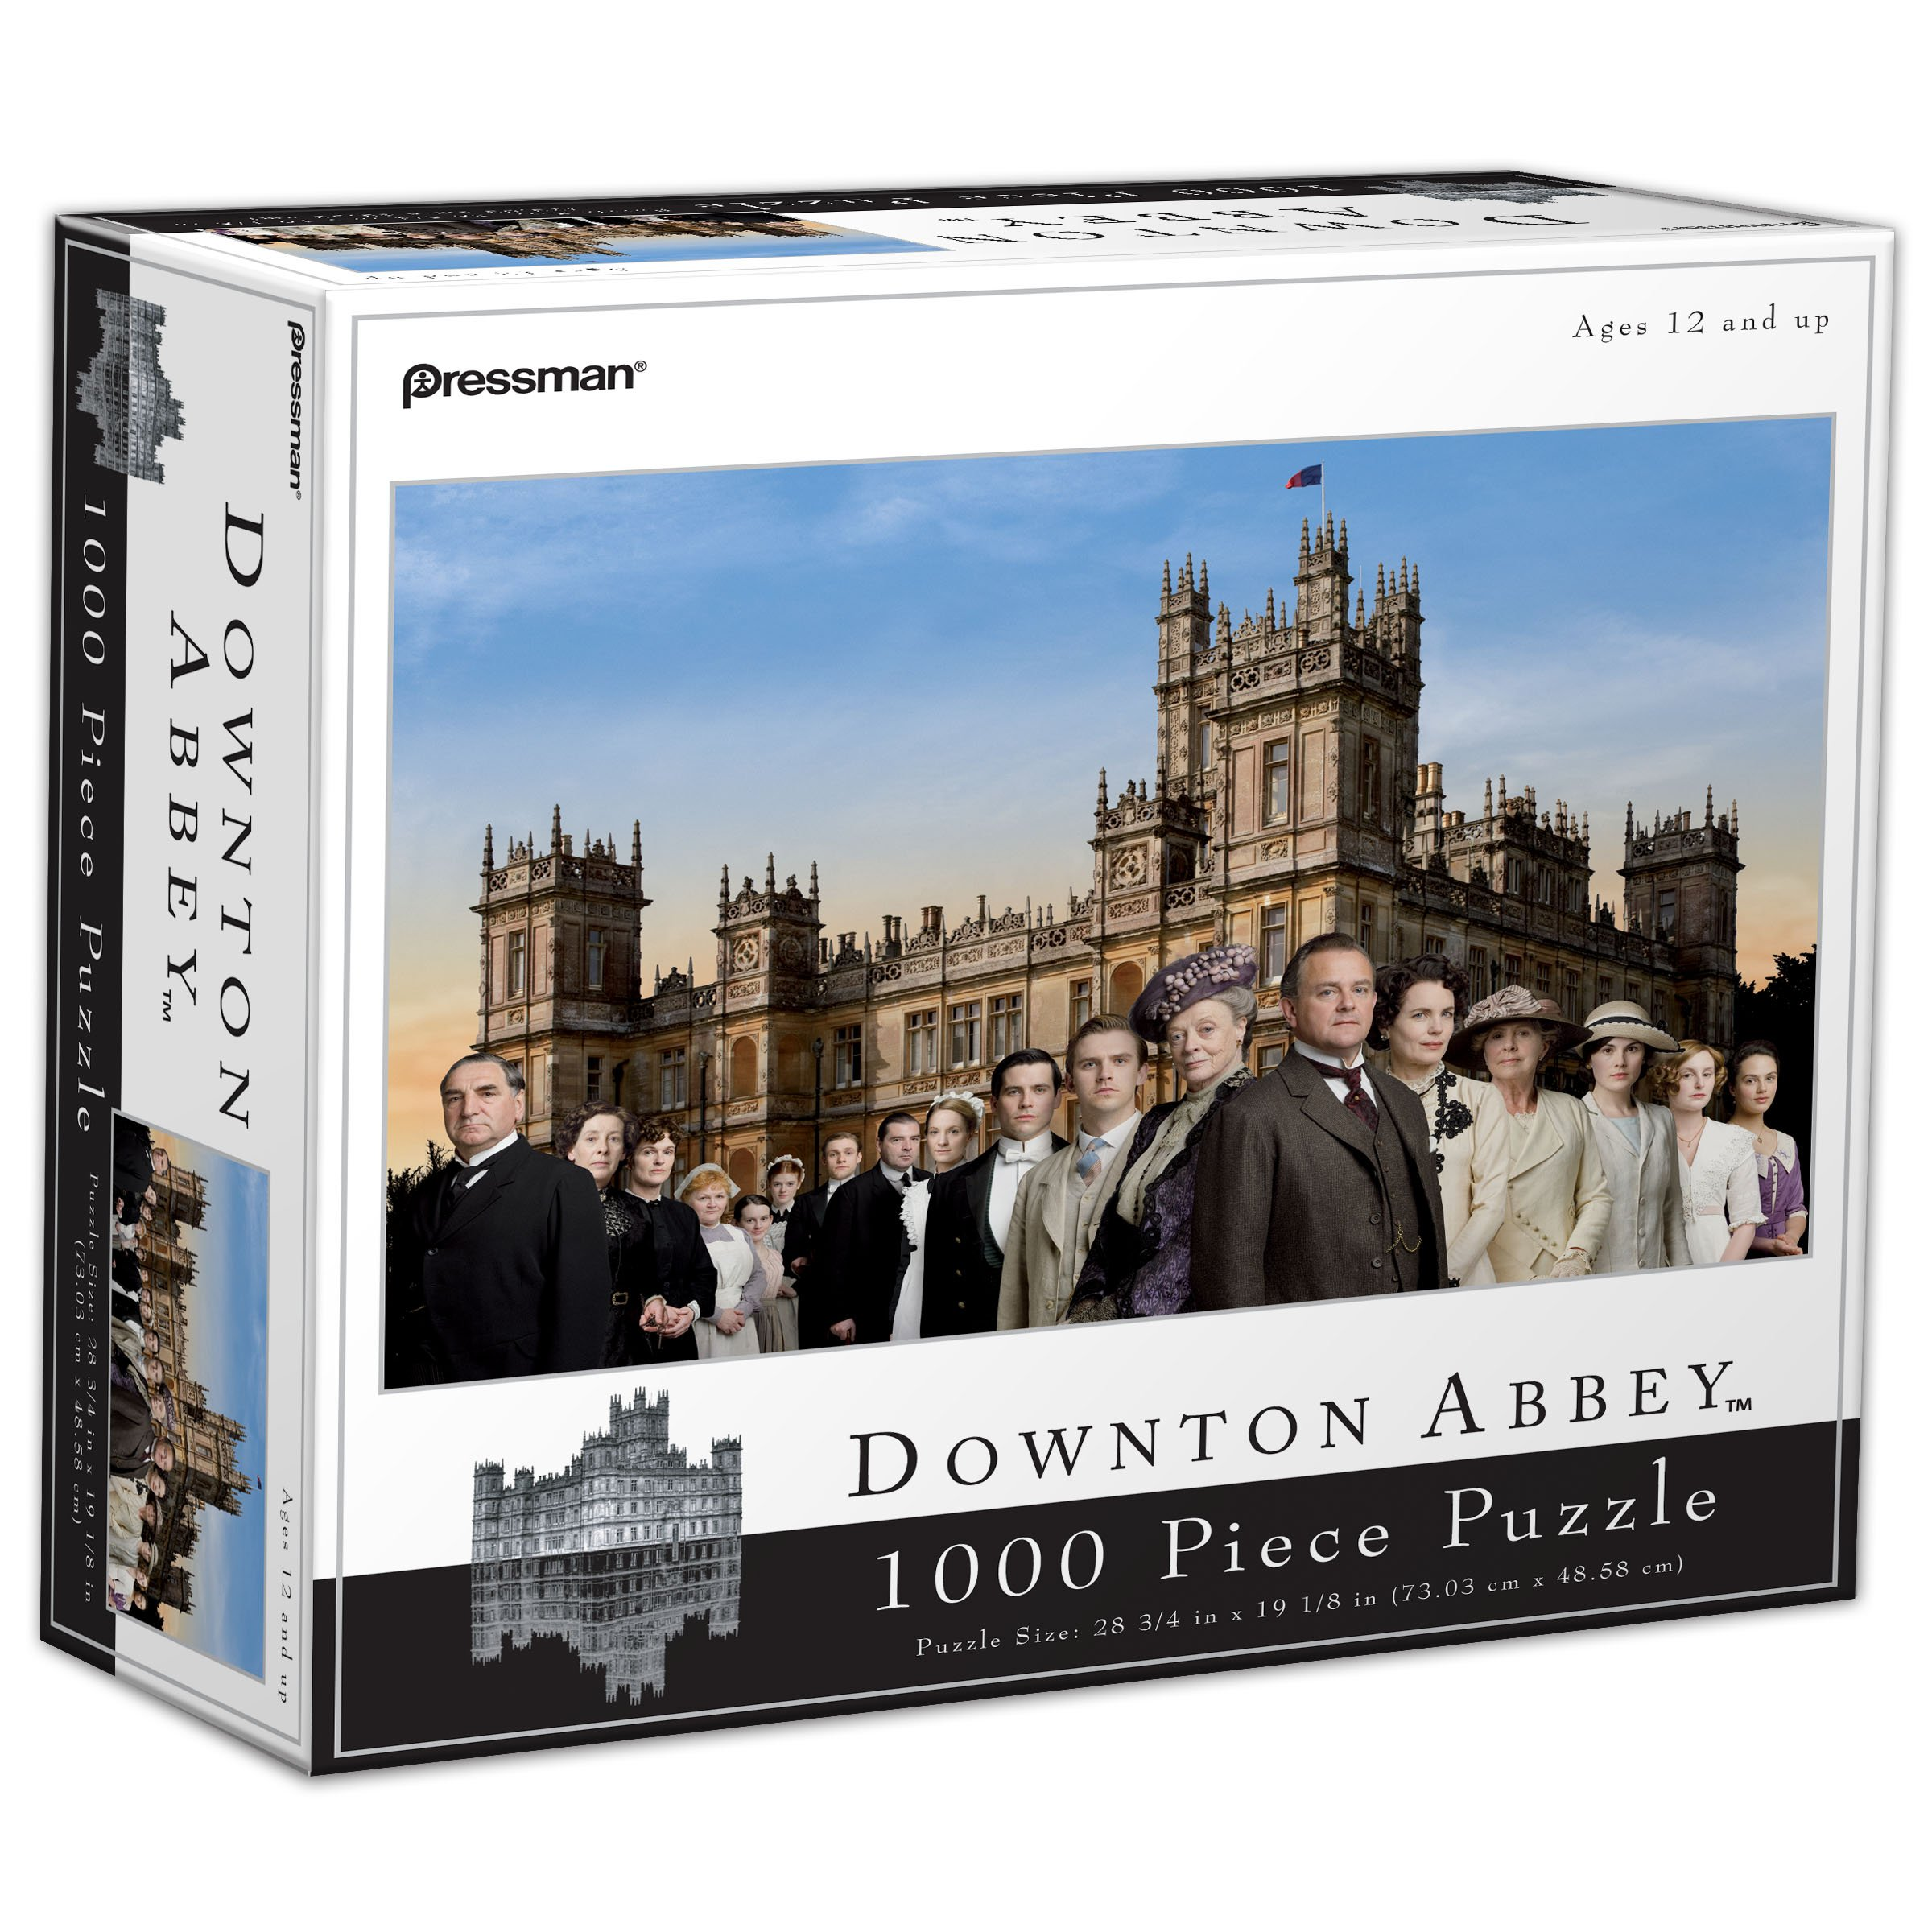 Downton Abbey 1000-Piece Puzzle - Family and Staff by Pressman